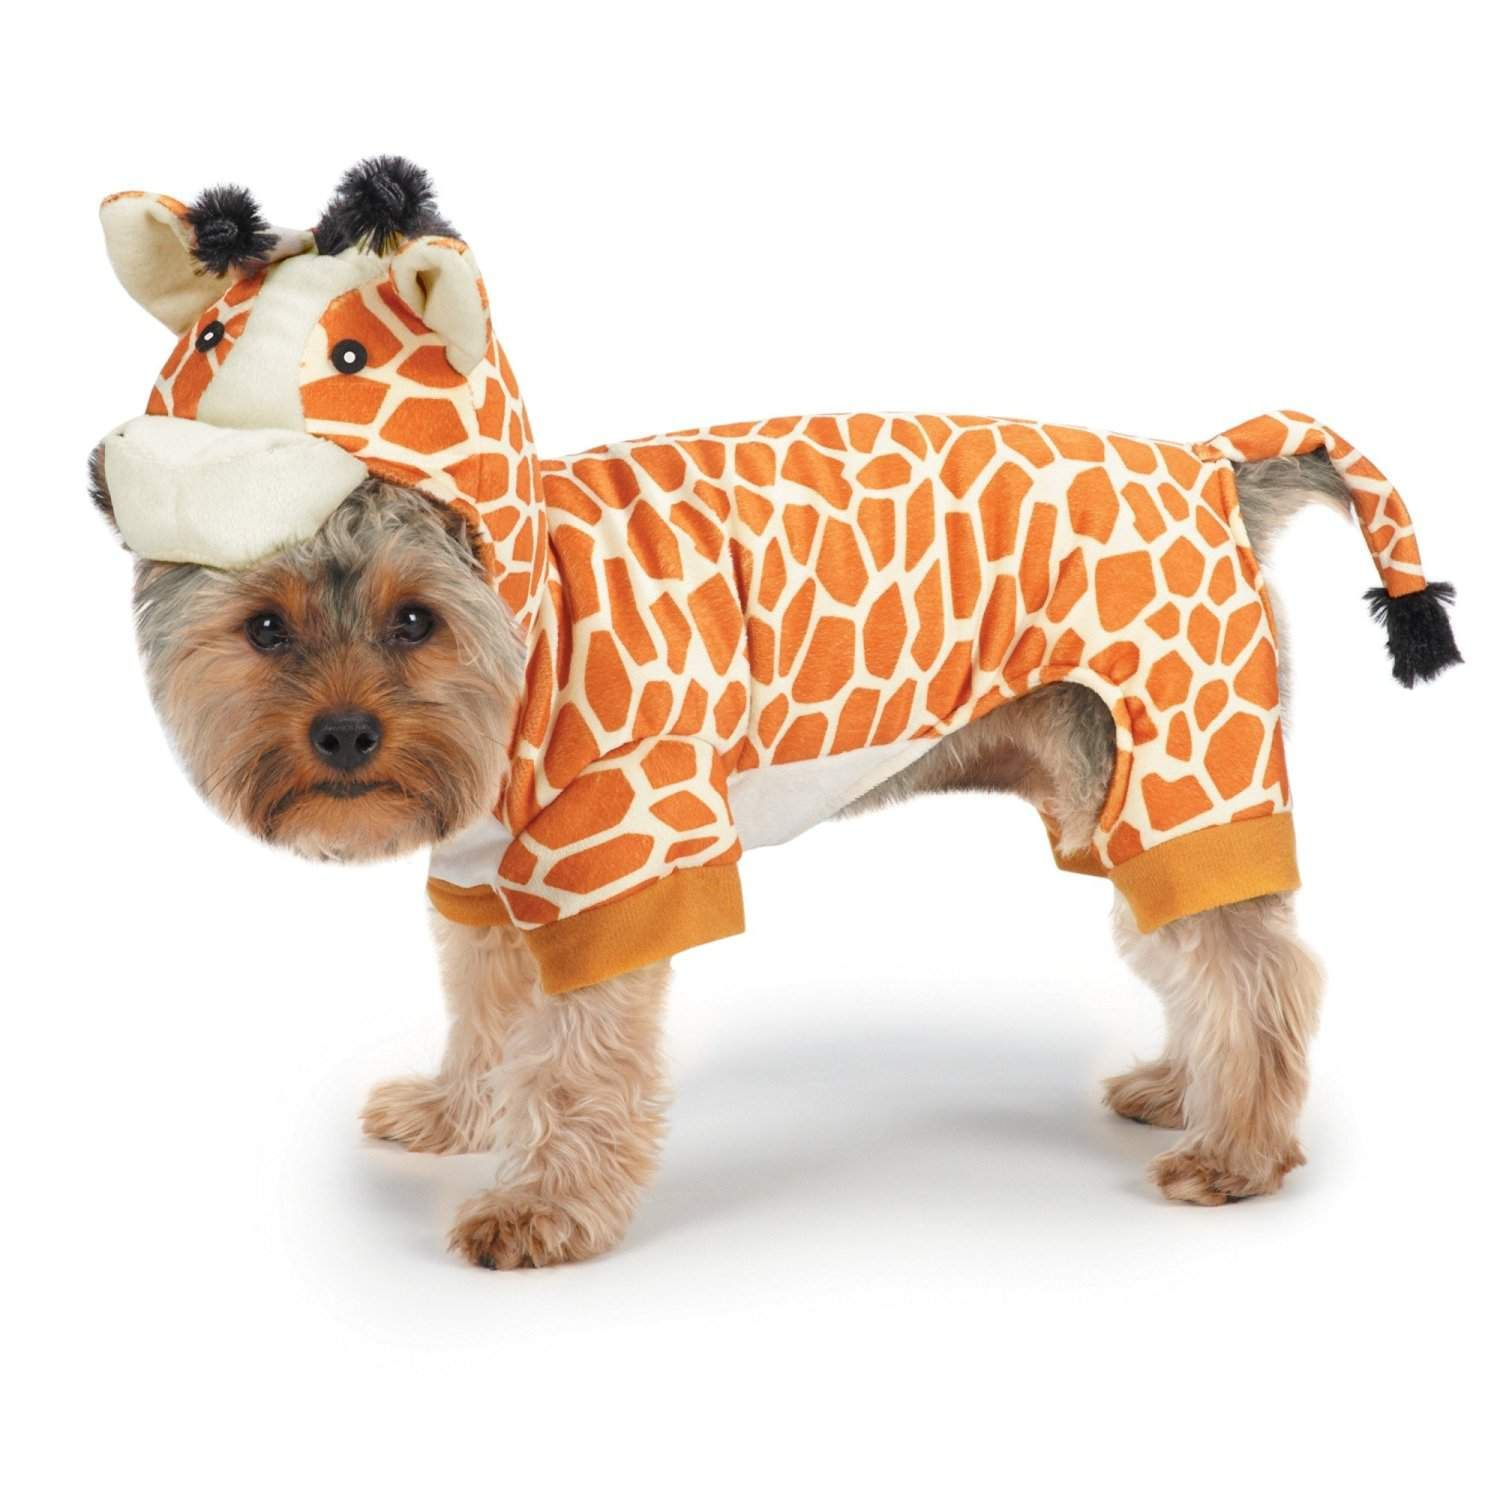 Giraffe Dog Costume Pet Costumes Dog Halloween Costumes